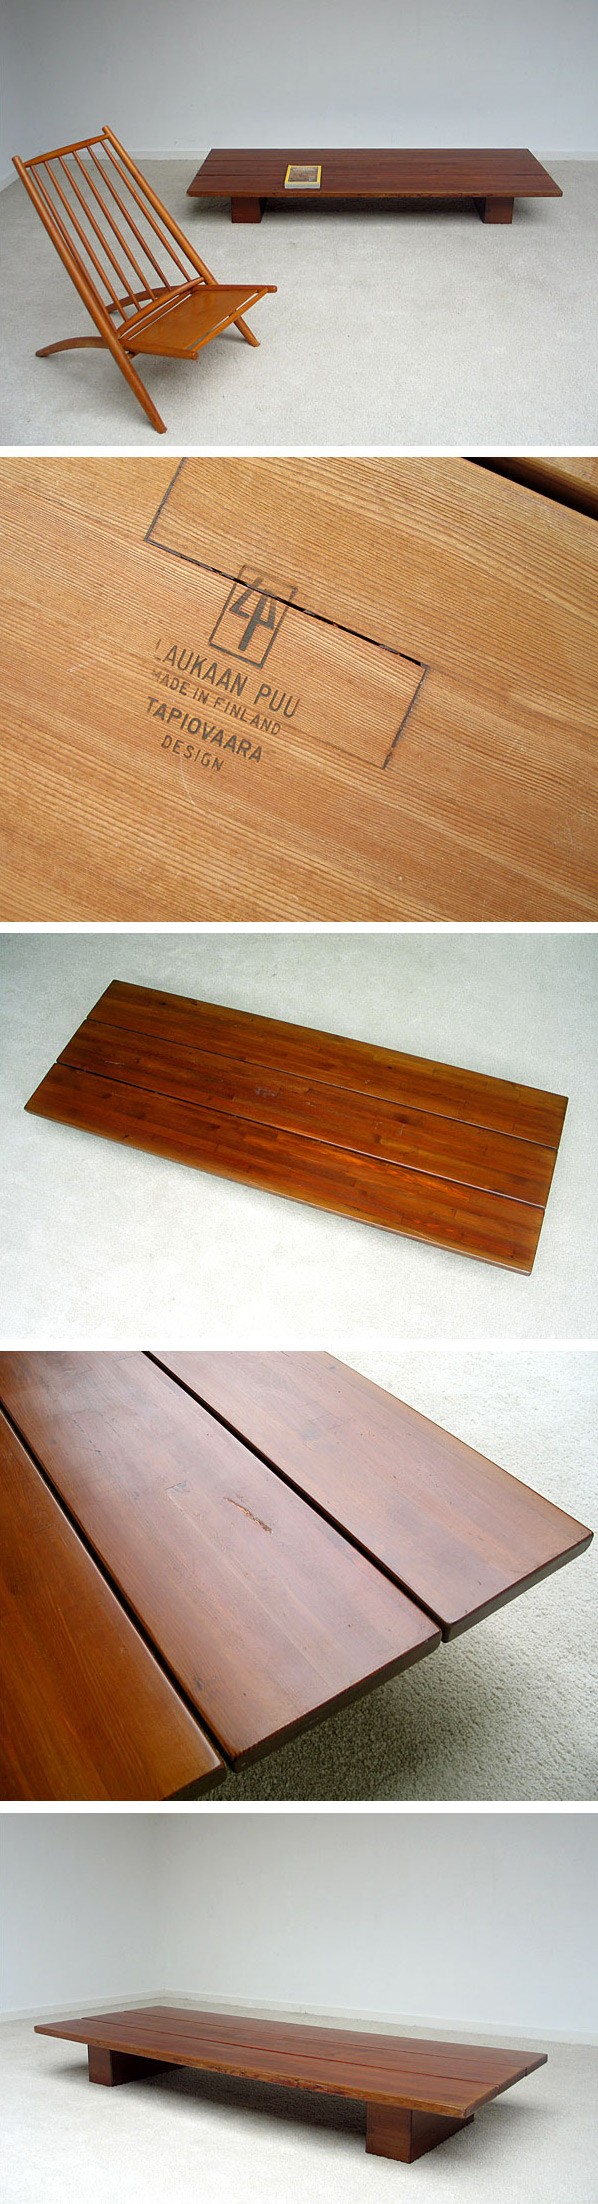 Coffee table Ilmari Tapiovaara Finland 1955 Large